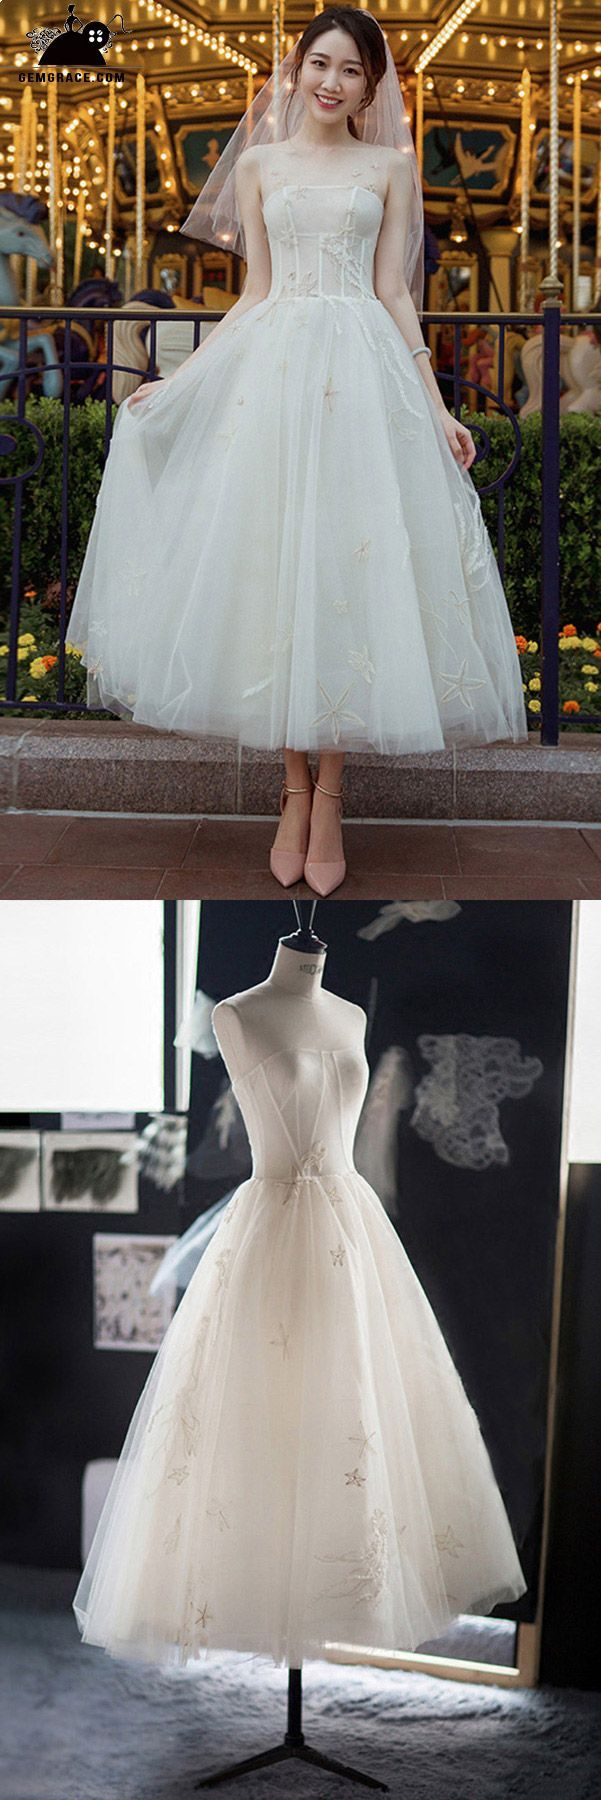 Vintage chic tea length tulle wedding dress reception dress with